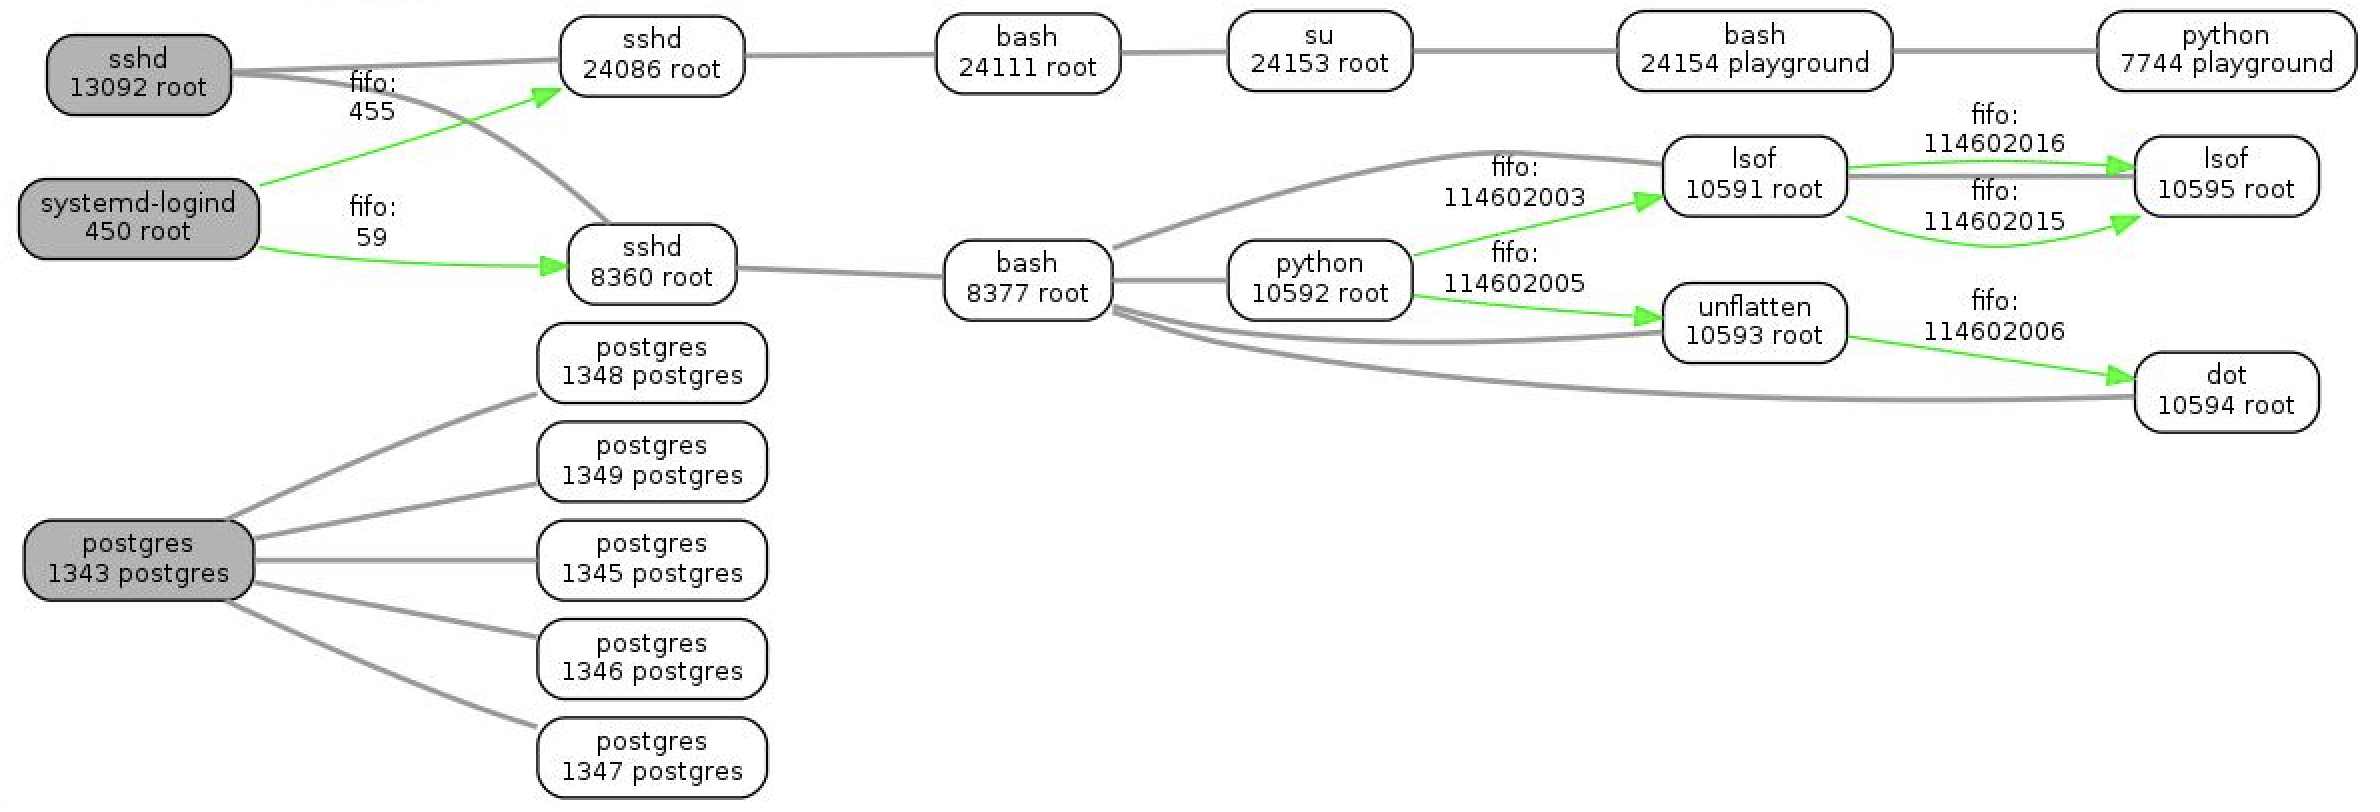 Visualization of process connections in Linux